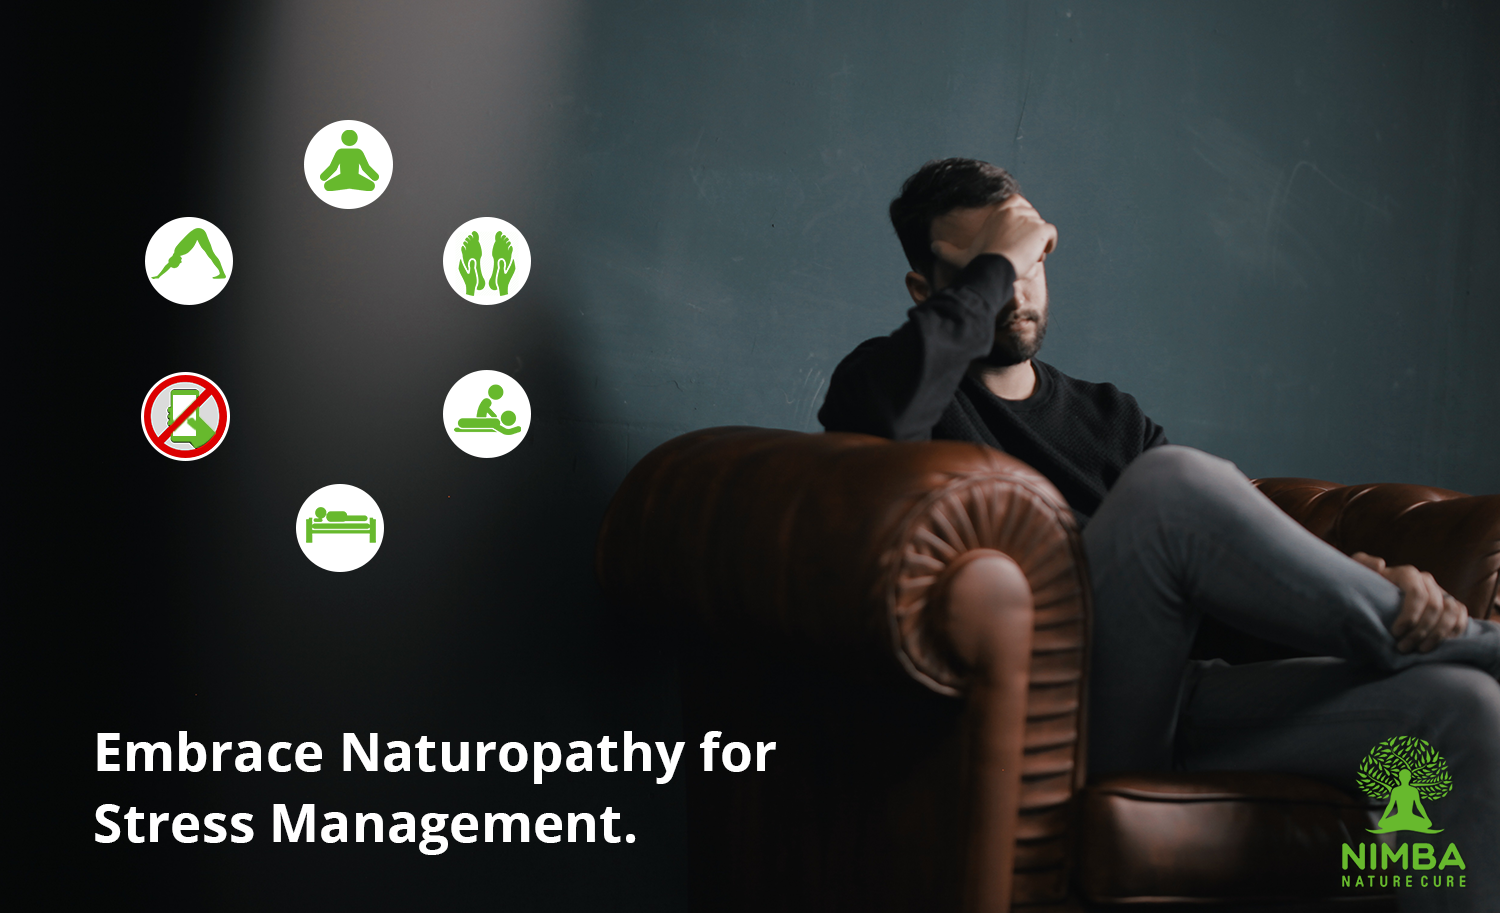 Naturopathy for stress management